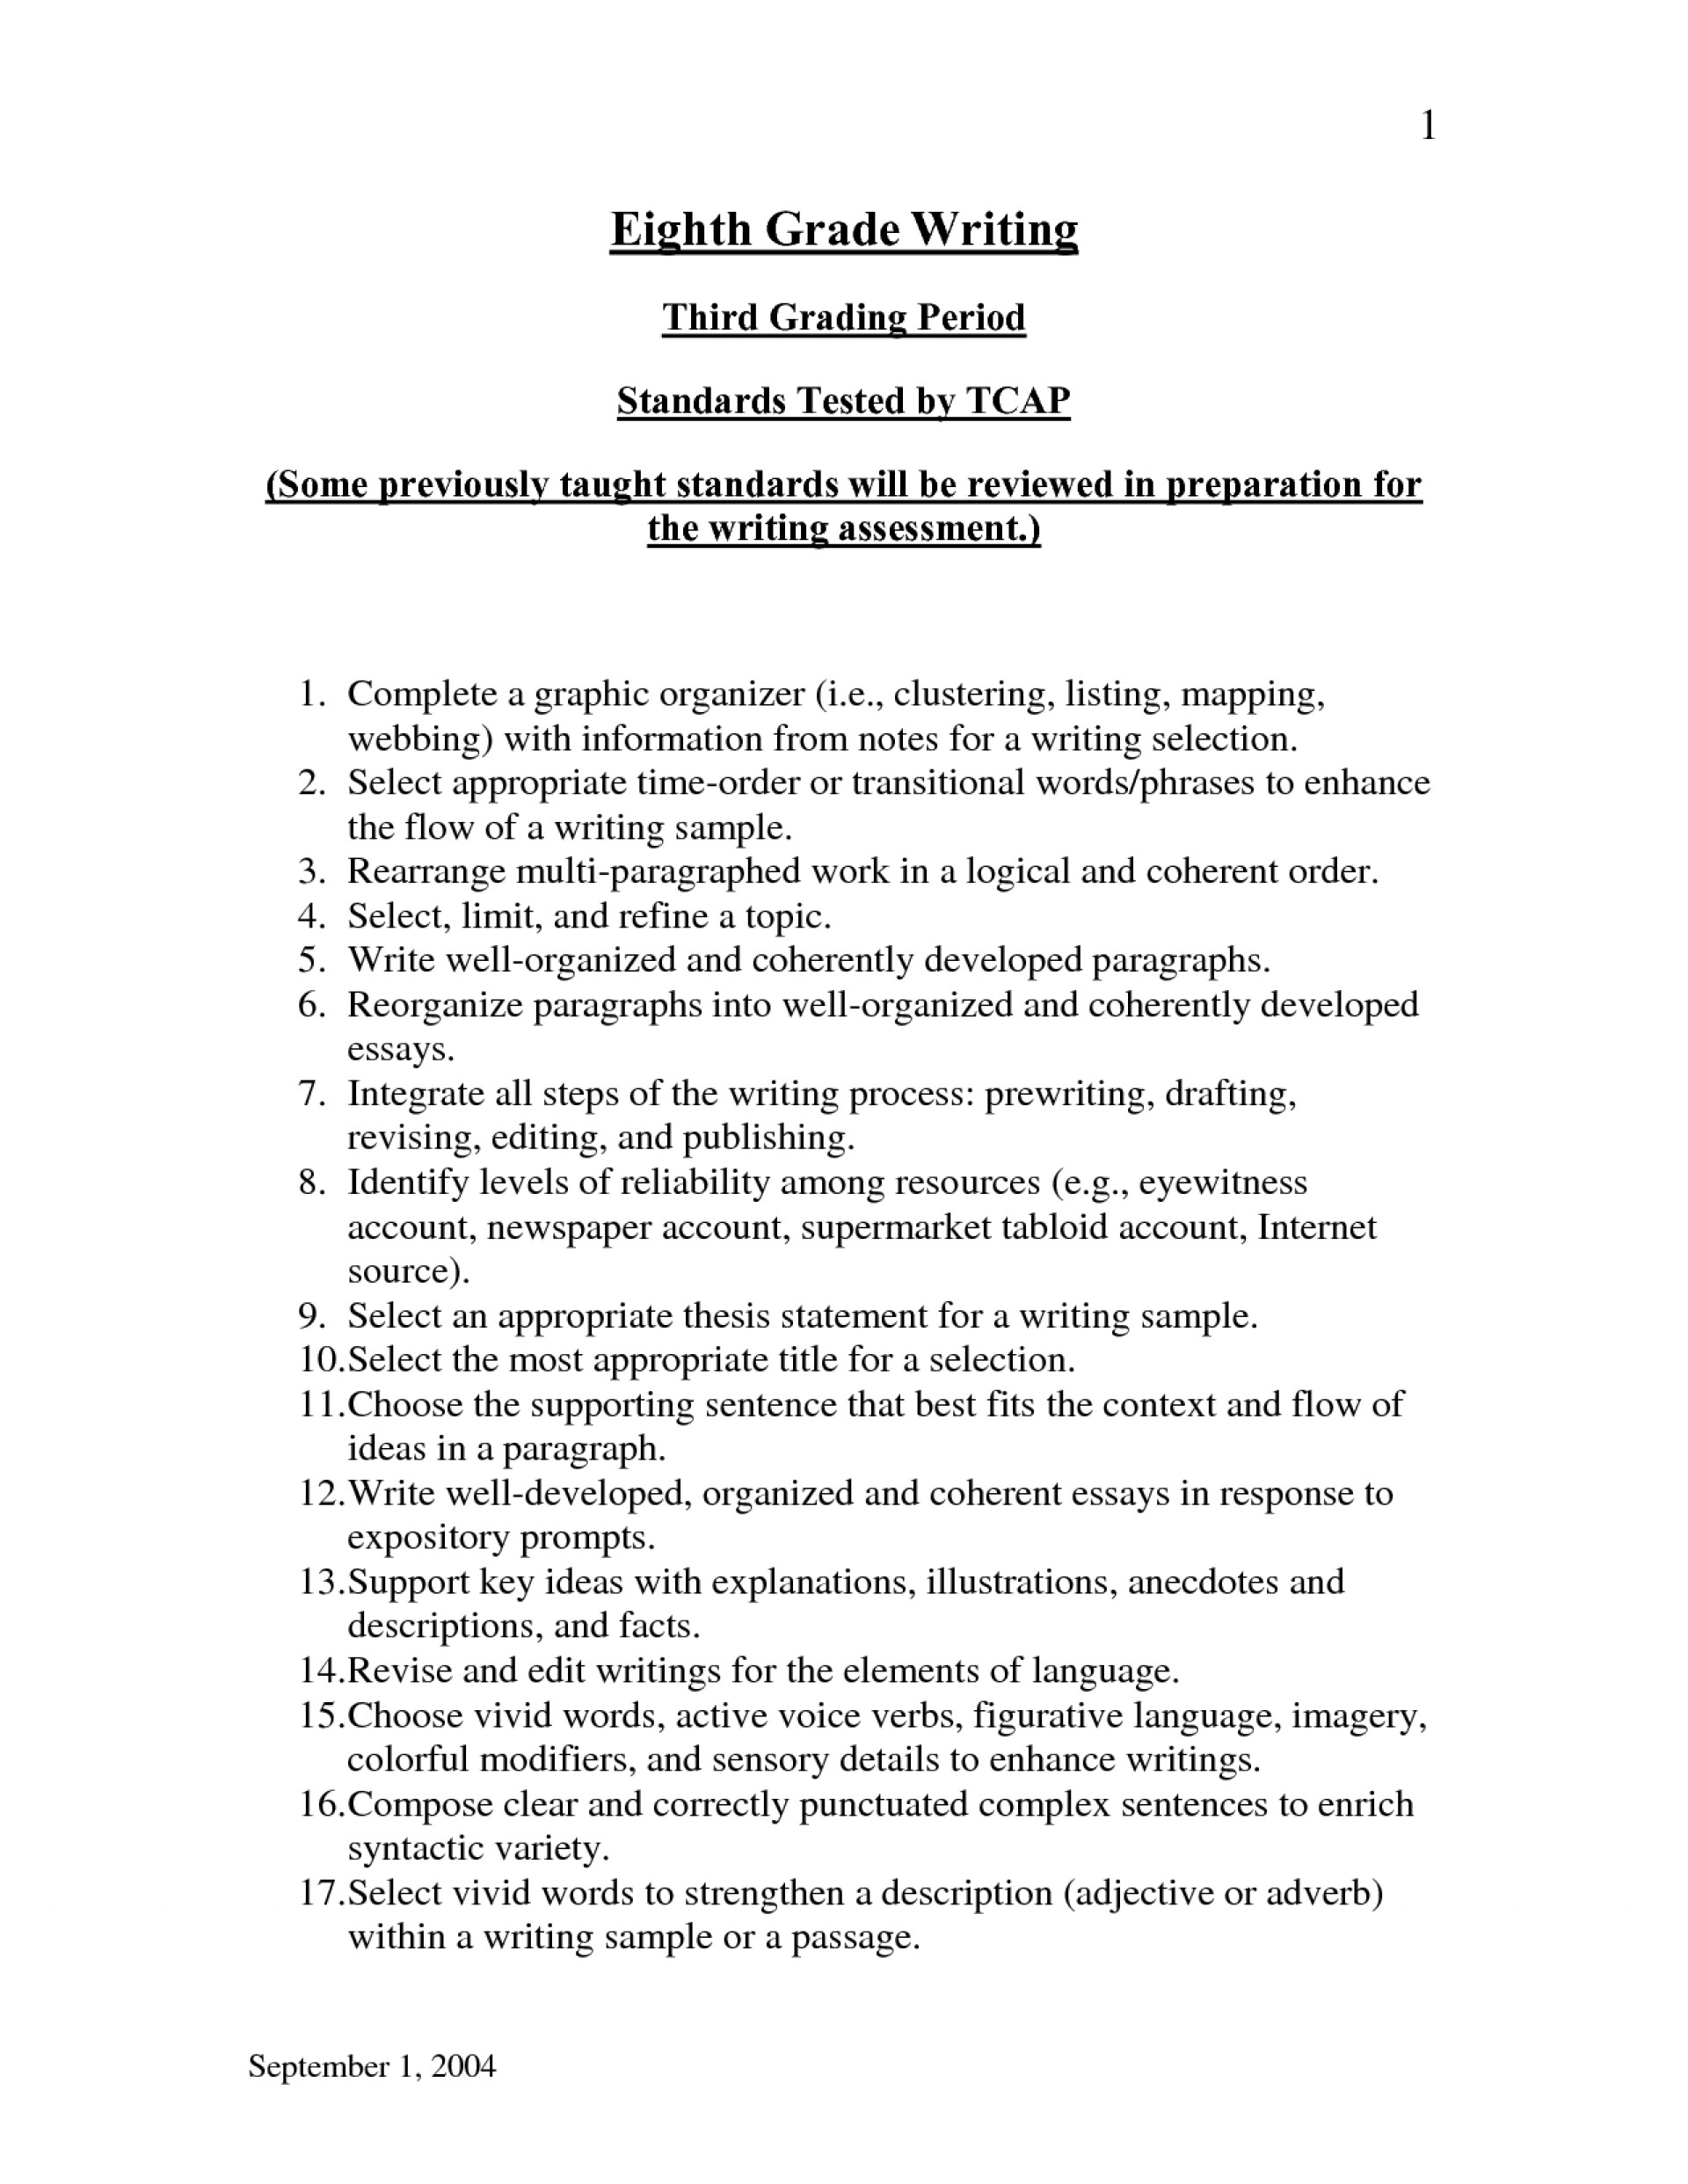 004 Expository Essay Ideas Example Writing Prompts For High School 1088622 Incredible Good Prompt 1920